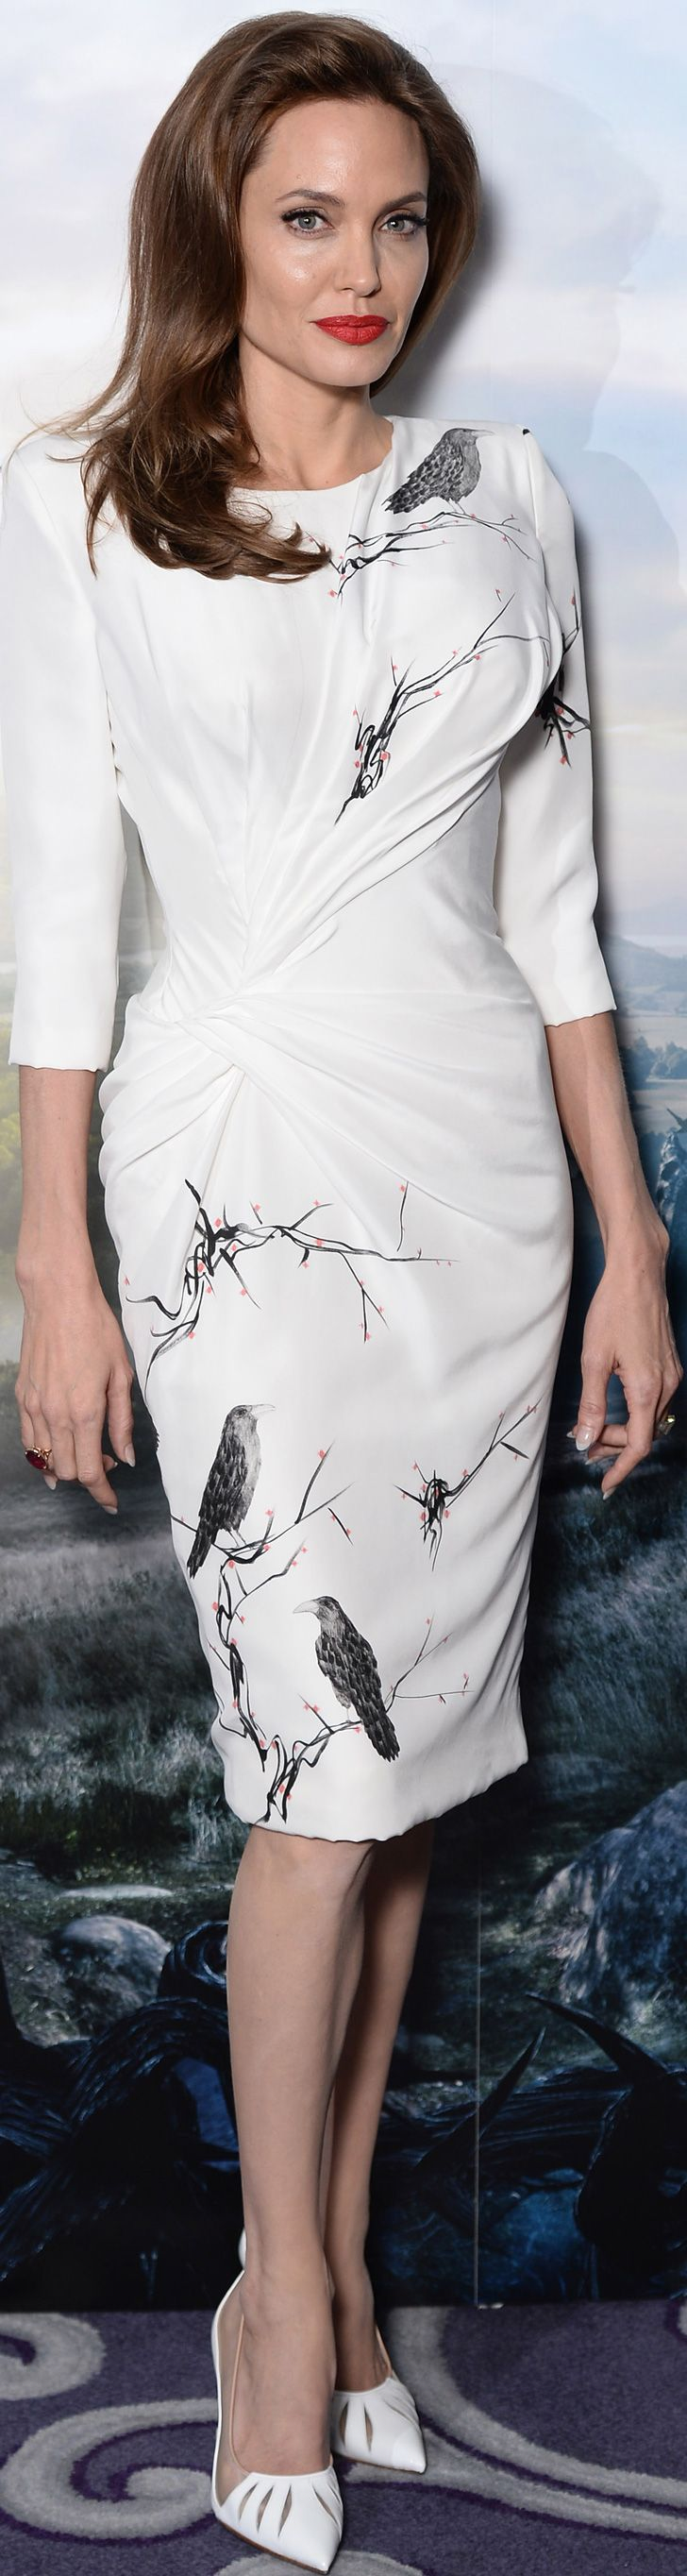 You can buy Angelina Jolie's Christian Louboutin heels